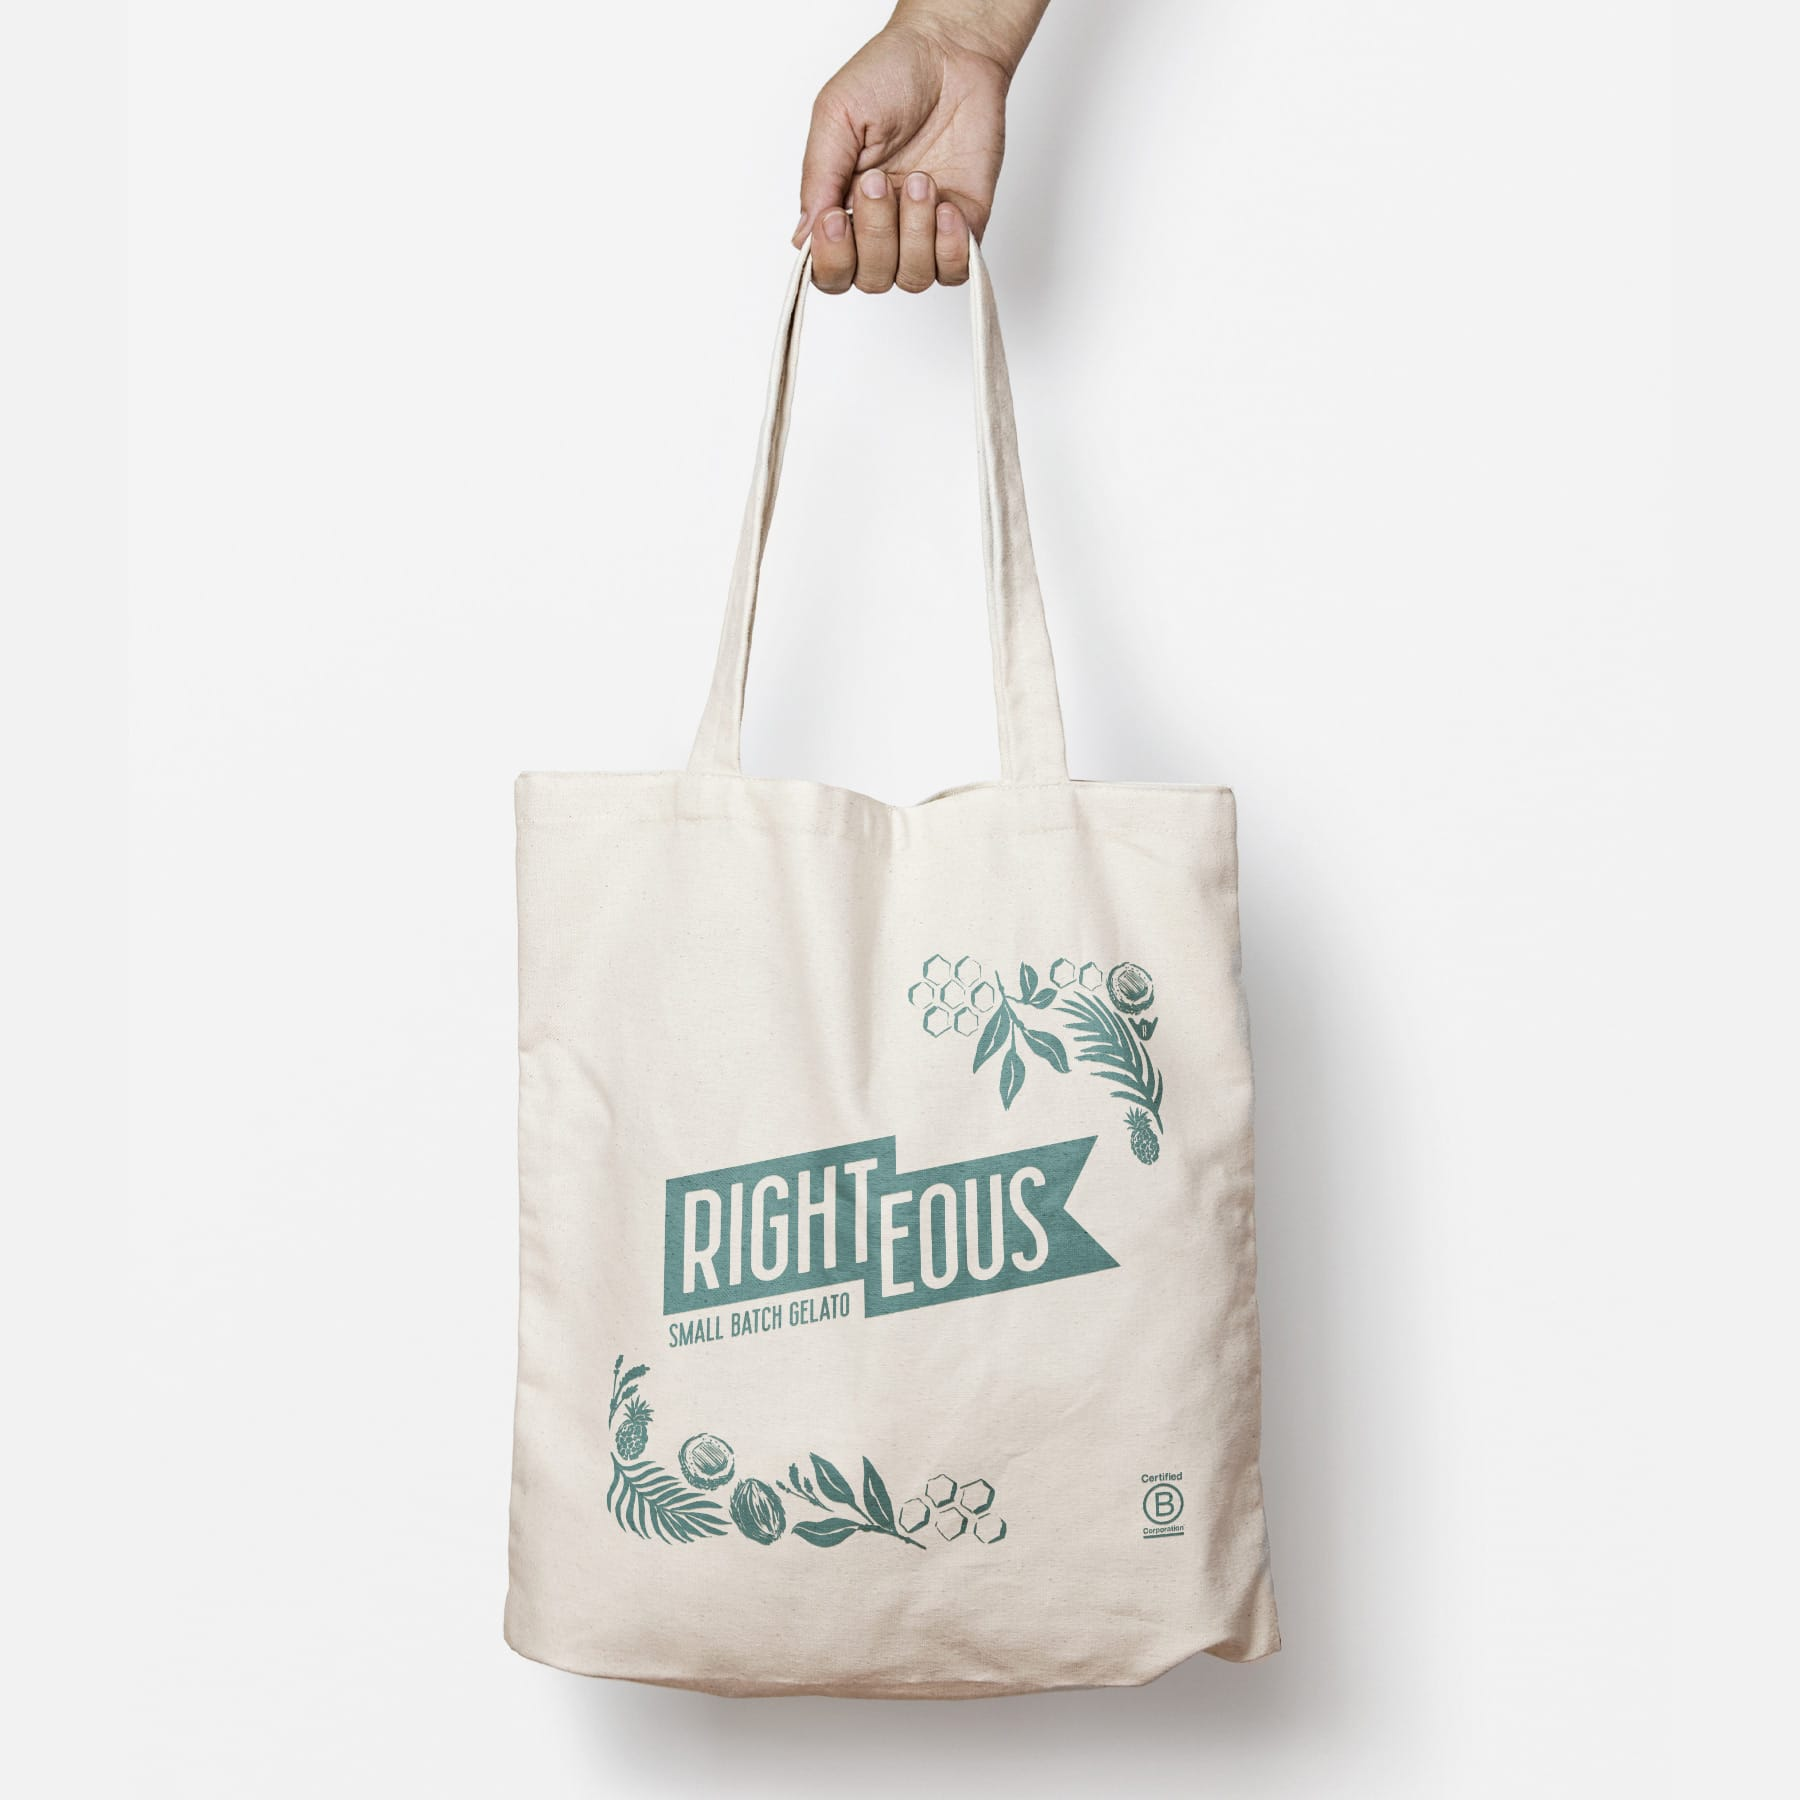 Righteous Tote